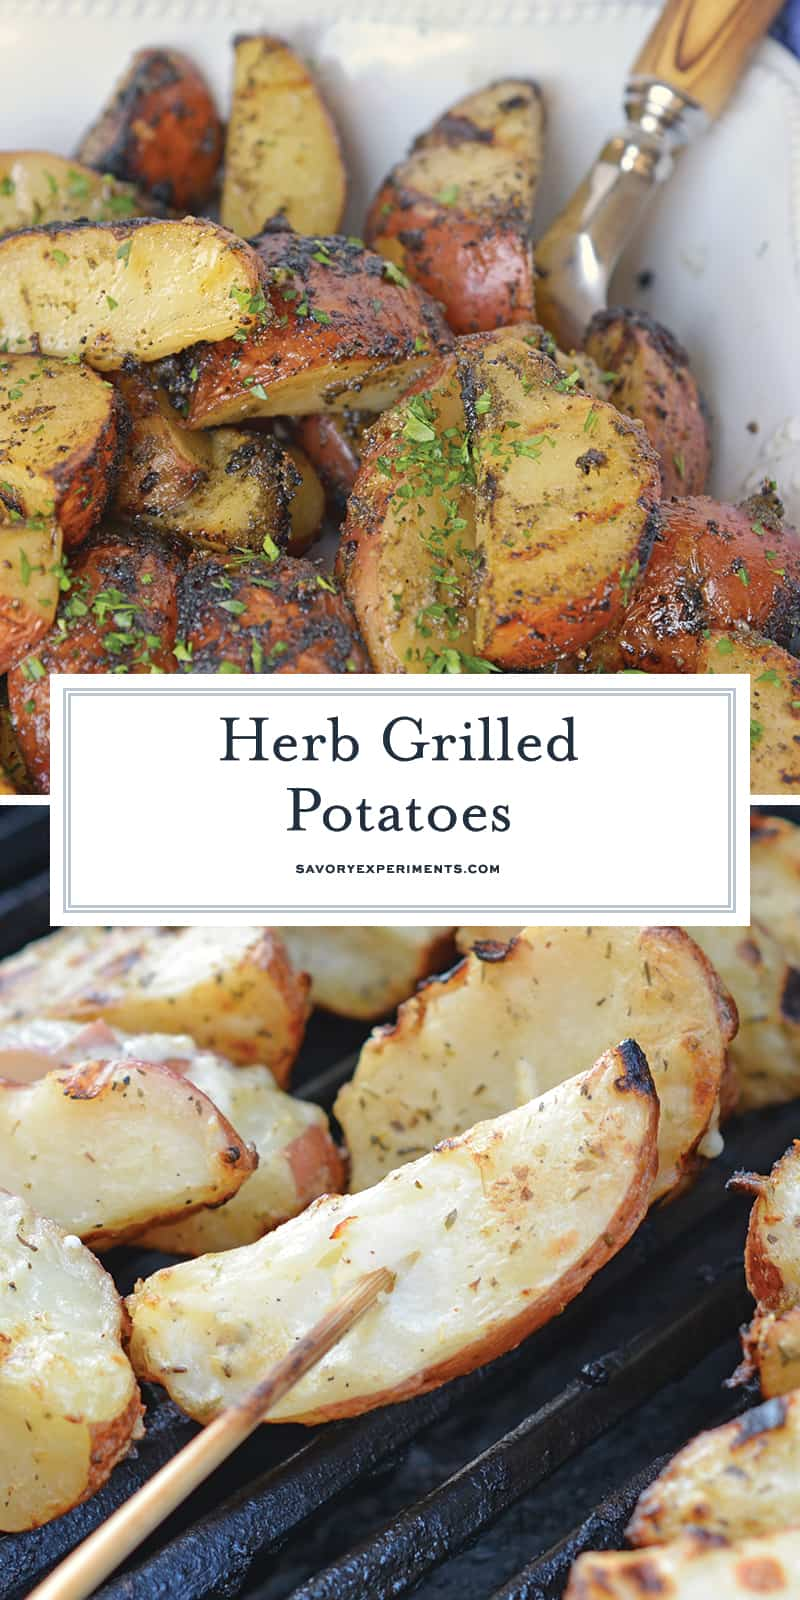 Herb Grilled Potatoes uses miracle whip and a handful of spices to keep those spuds nice and moist with loads of flavor! Make this easy side dish today! #grilledpotatoes #grilledpotatowedges www.savoryexperiments.com